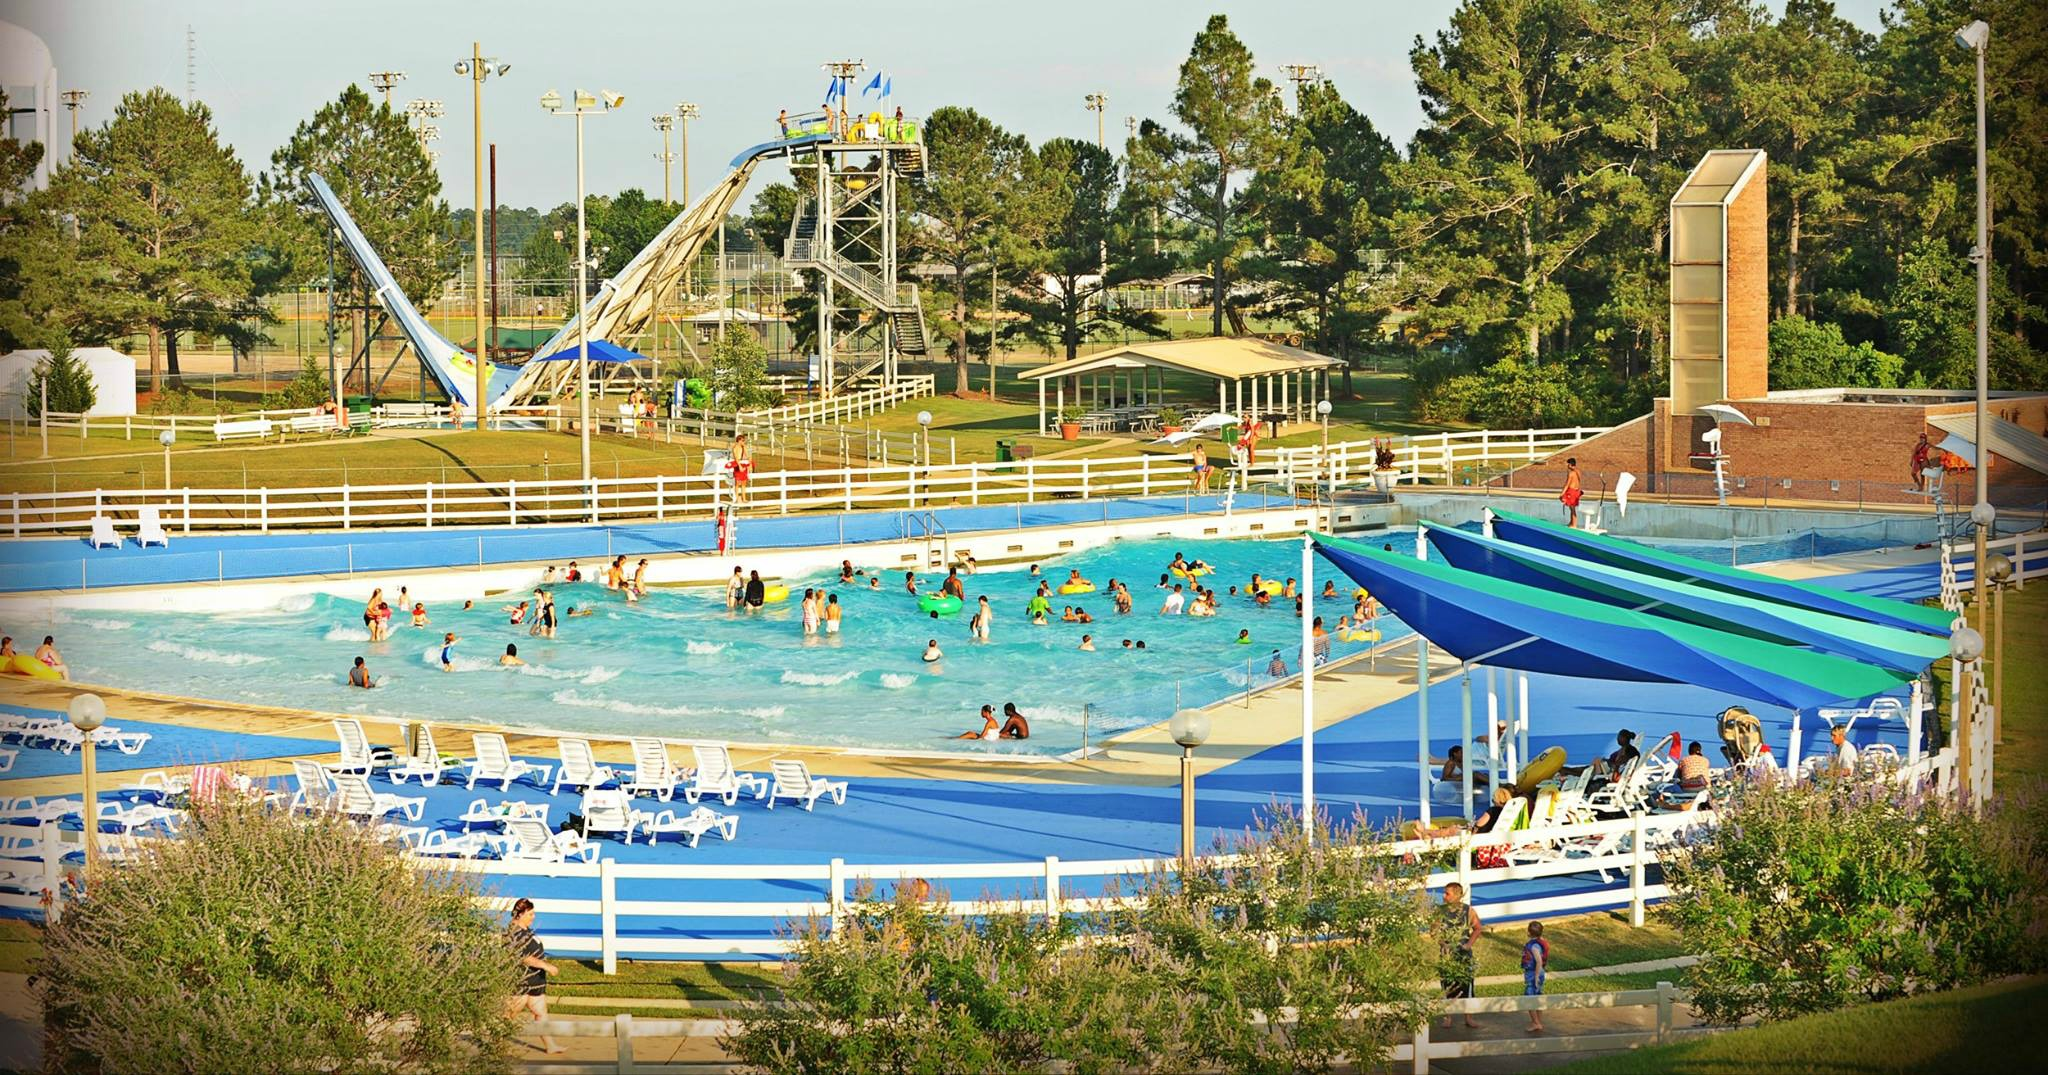 Virginia Water Lake >> Make Your Summer Epic With A Visit To This Hidden Alabama Water Park